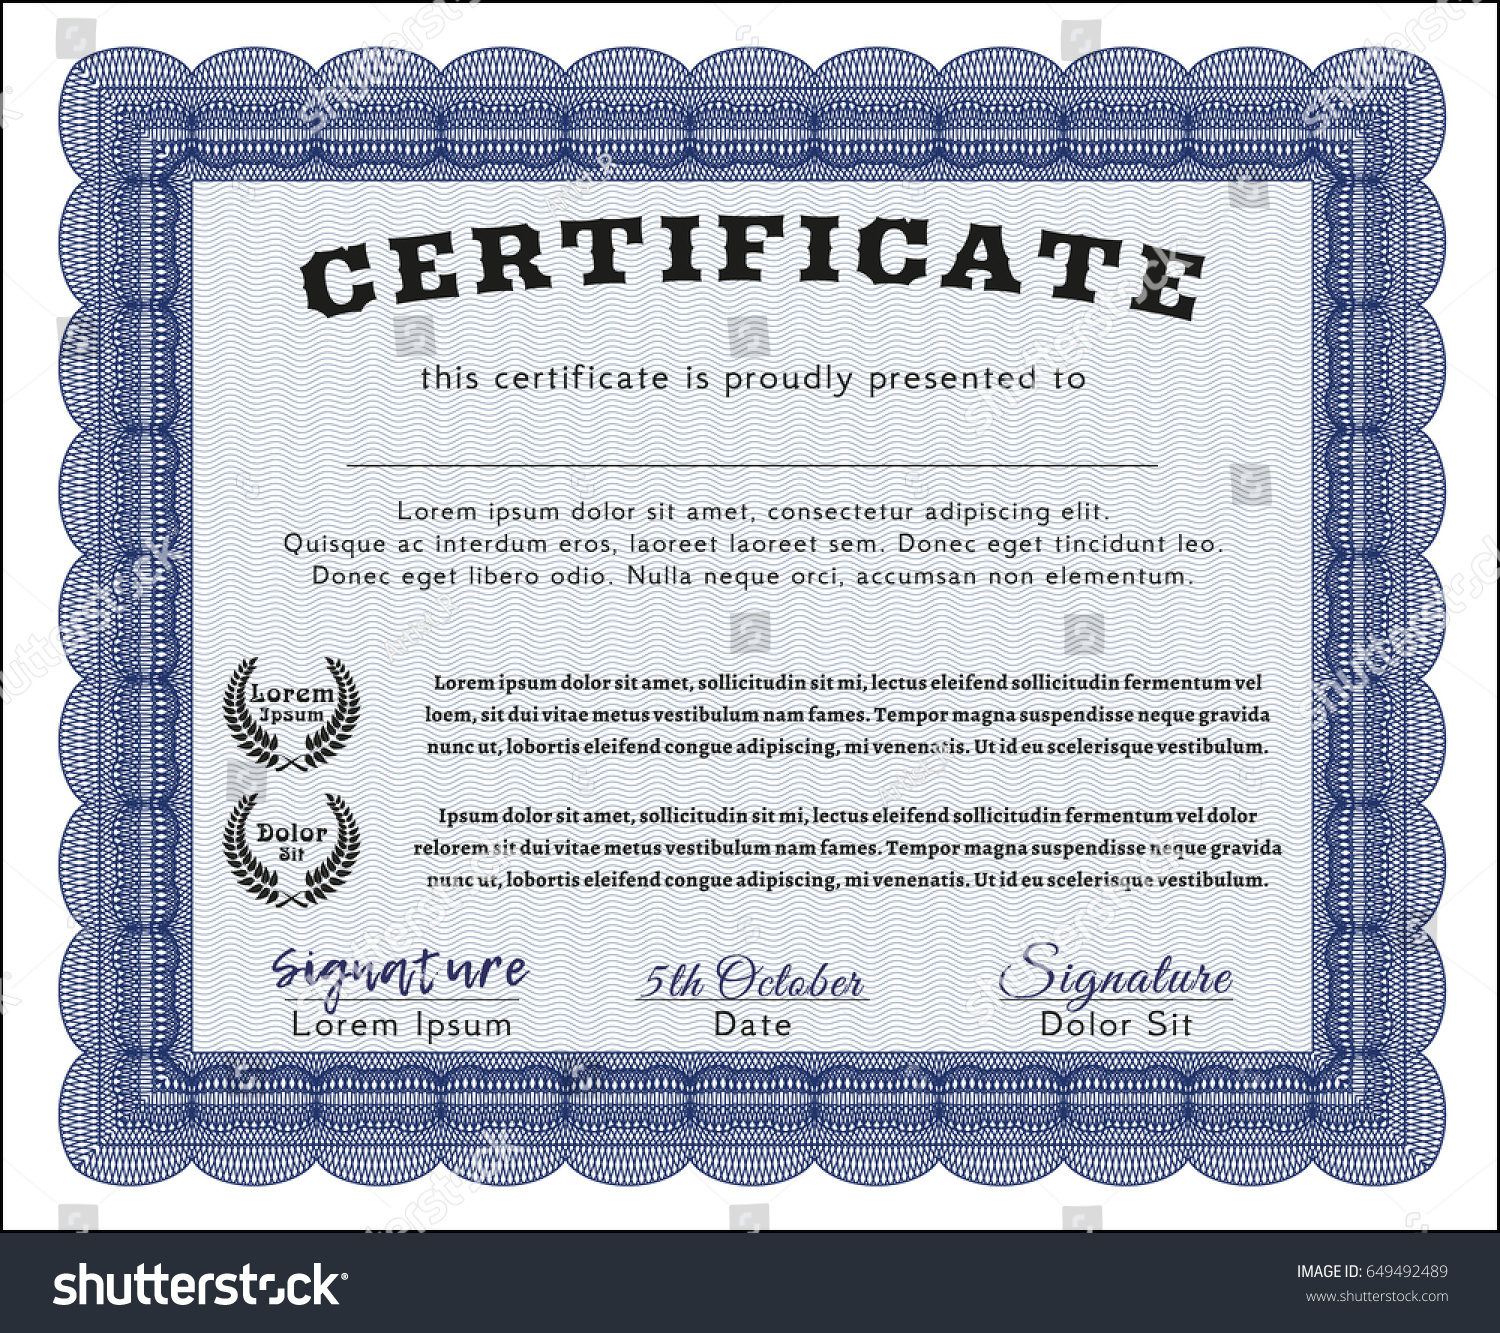 Blue certificate template guilloche pattern background stock blue certificate template with guilloche pattern and background detailed money pattern xflitez Images